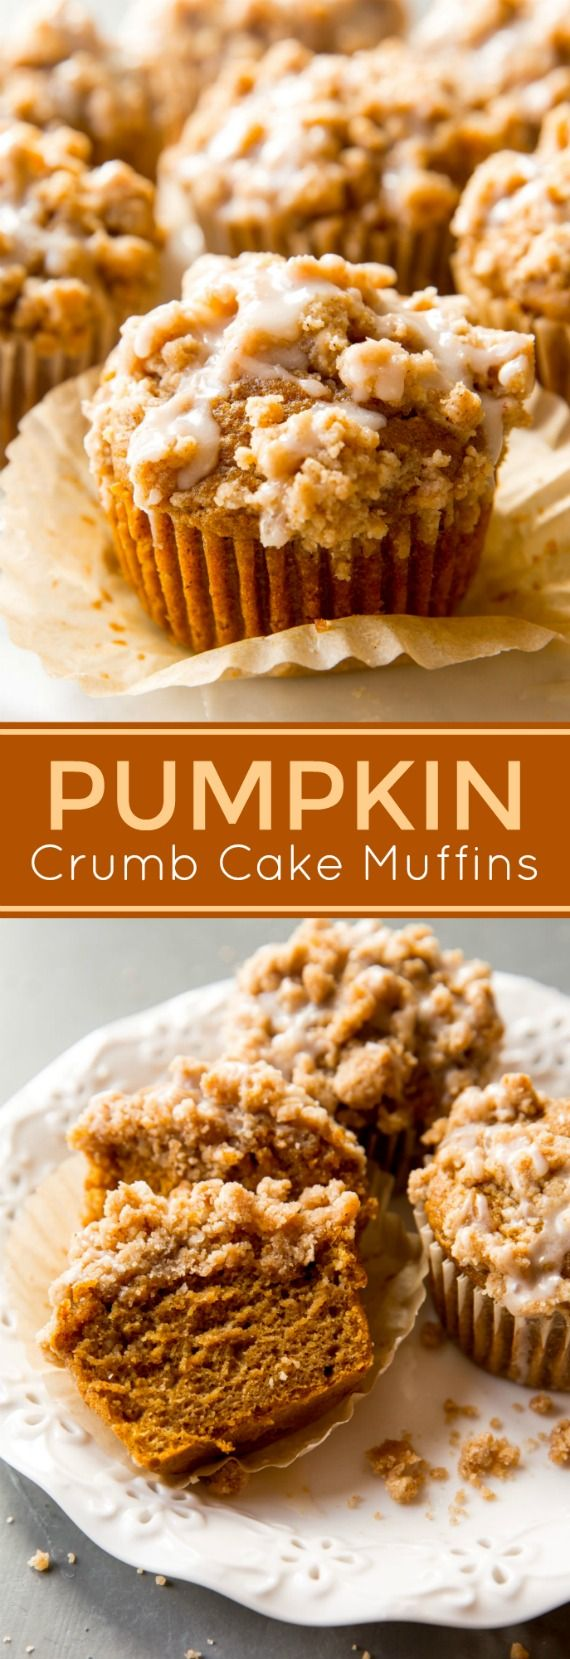 Ina Garten Pumpkin Muffins Best 25 Pumpkin Cupcakes Ideas On Pinterest  Pumpkin Pie